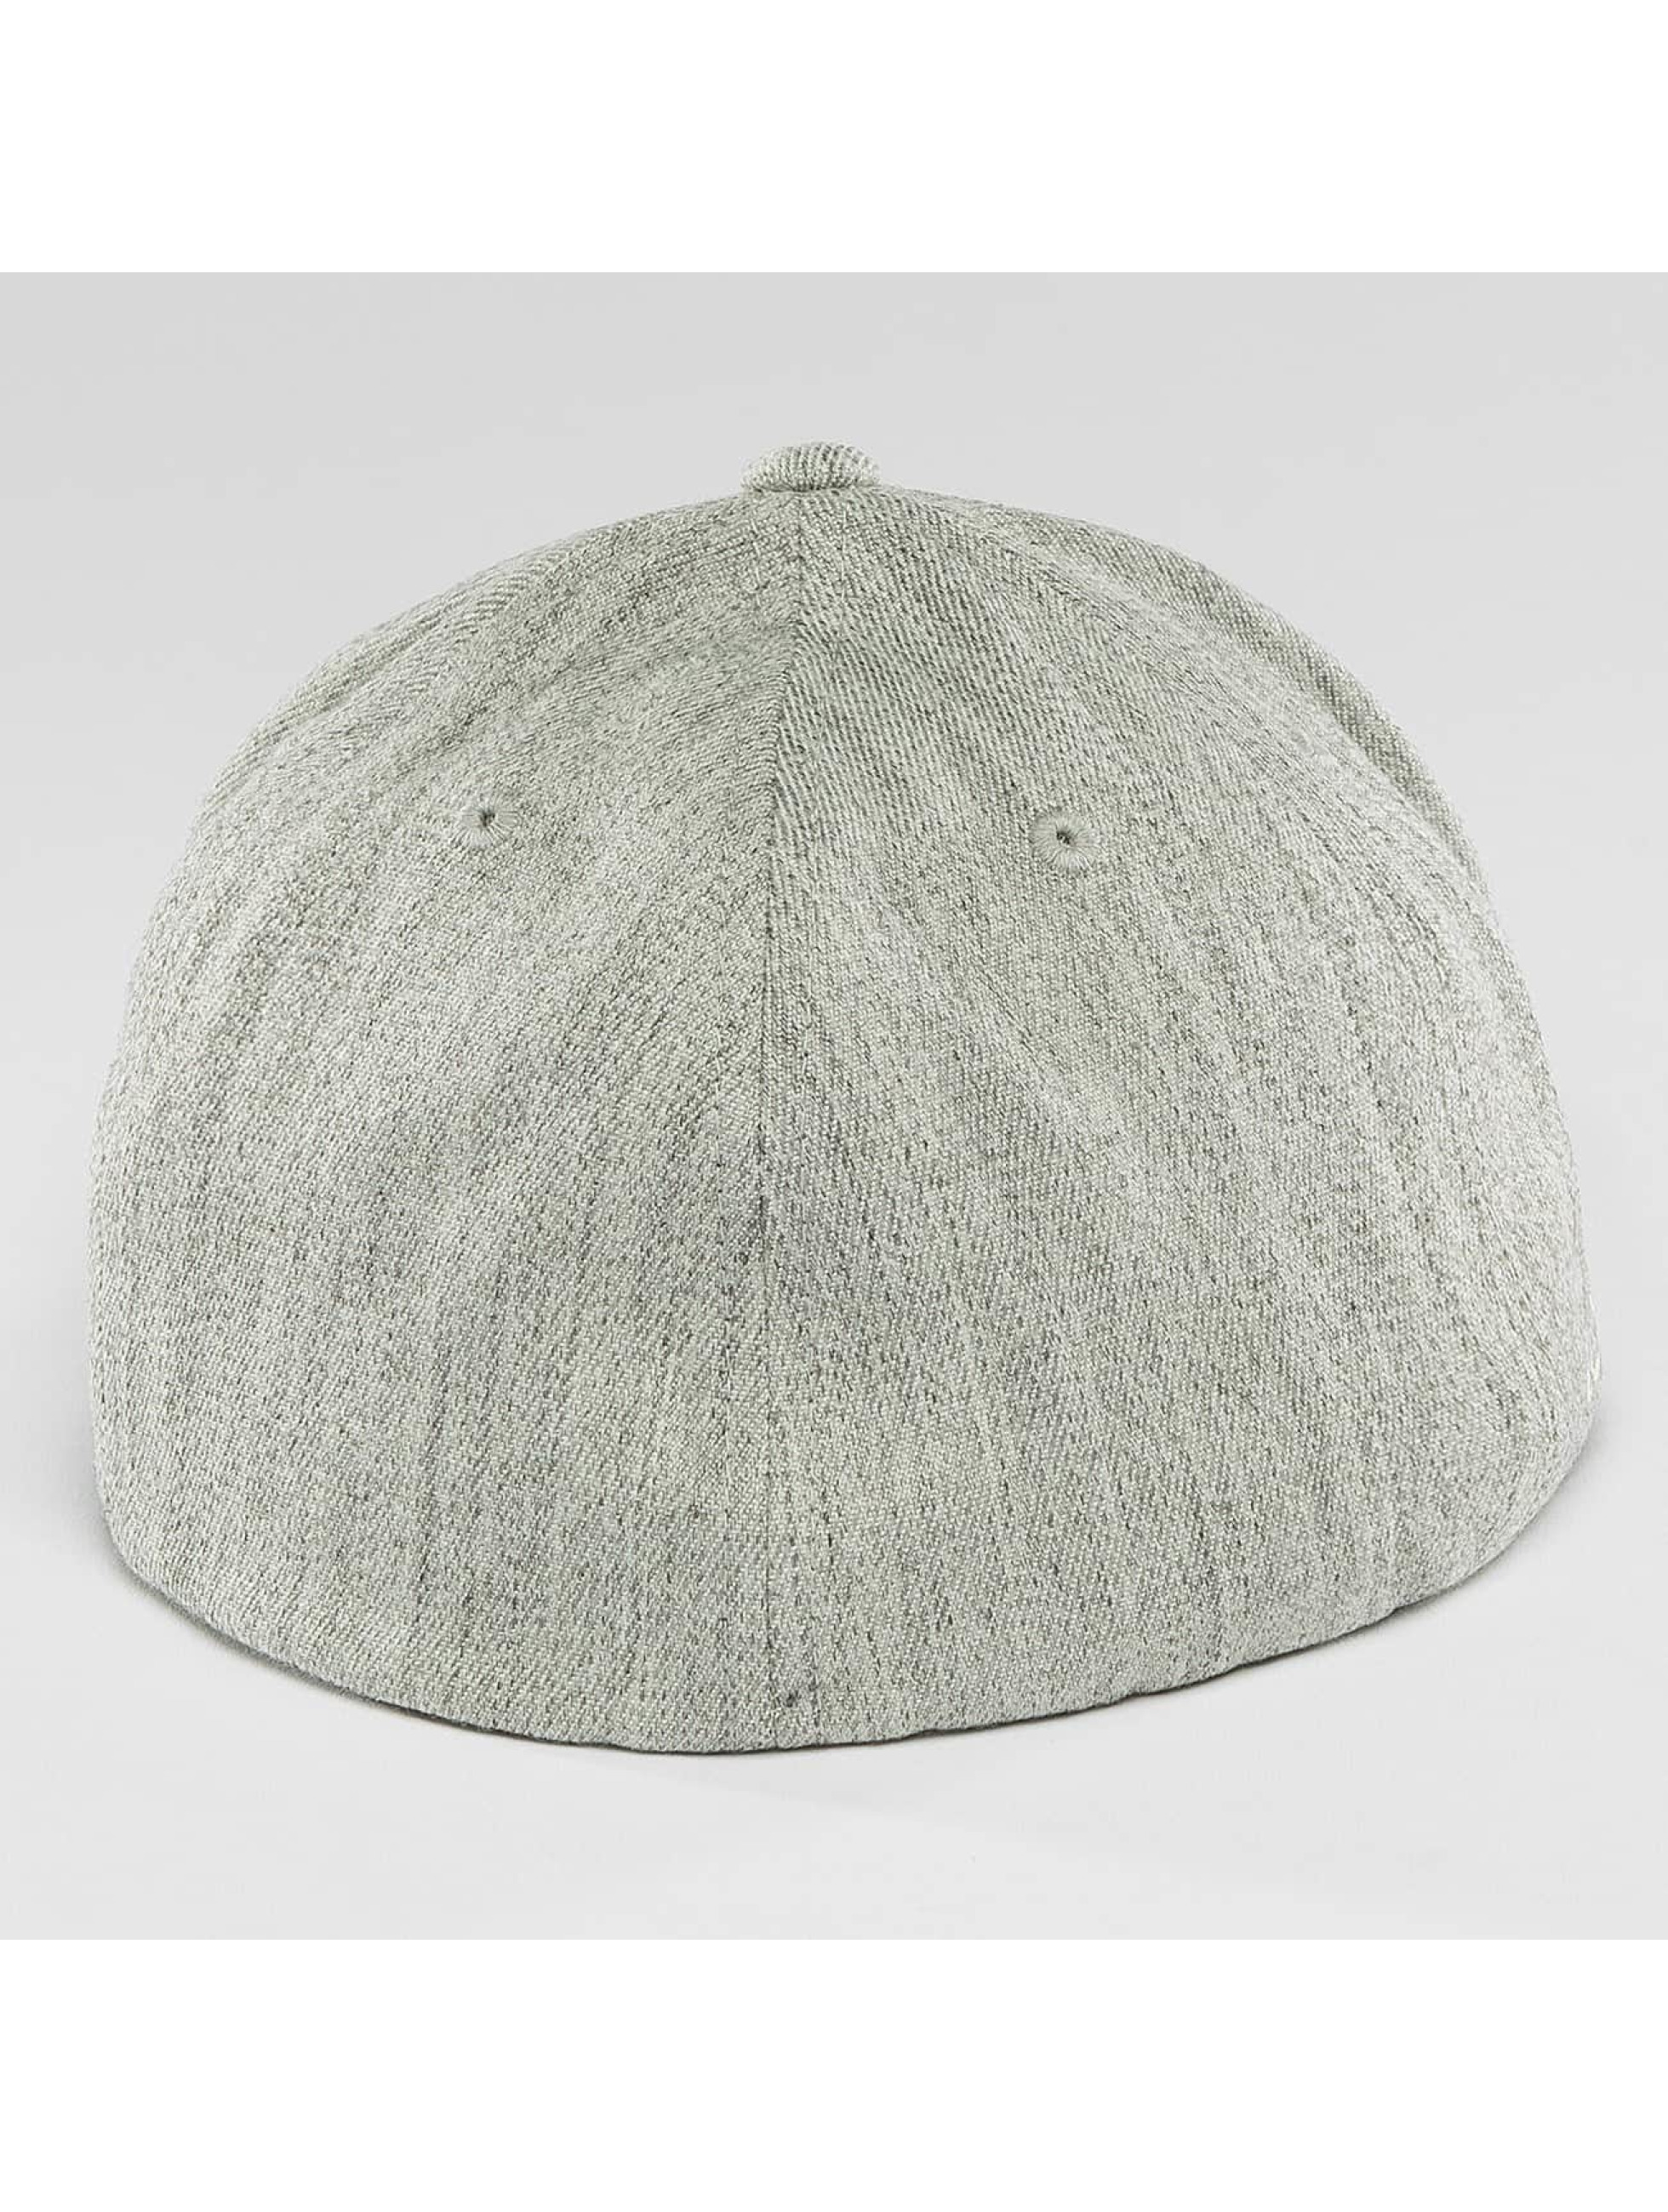 Quiksilver Fitted Cap Stuckles grau